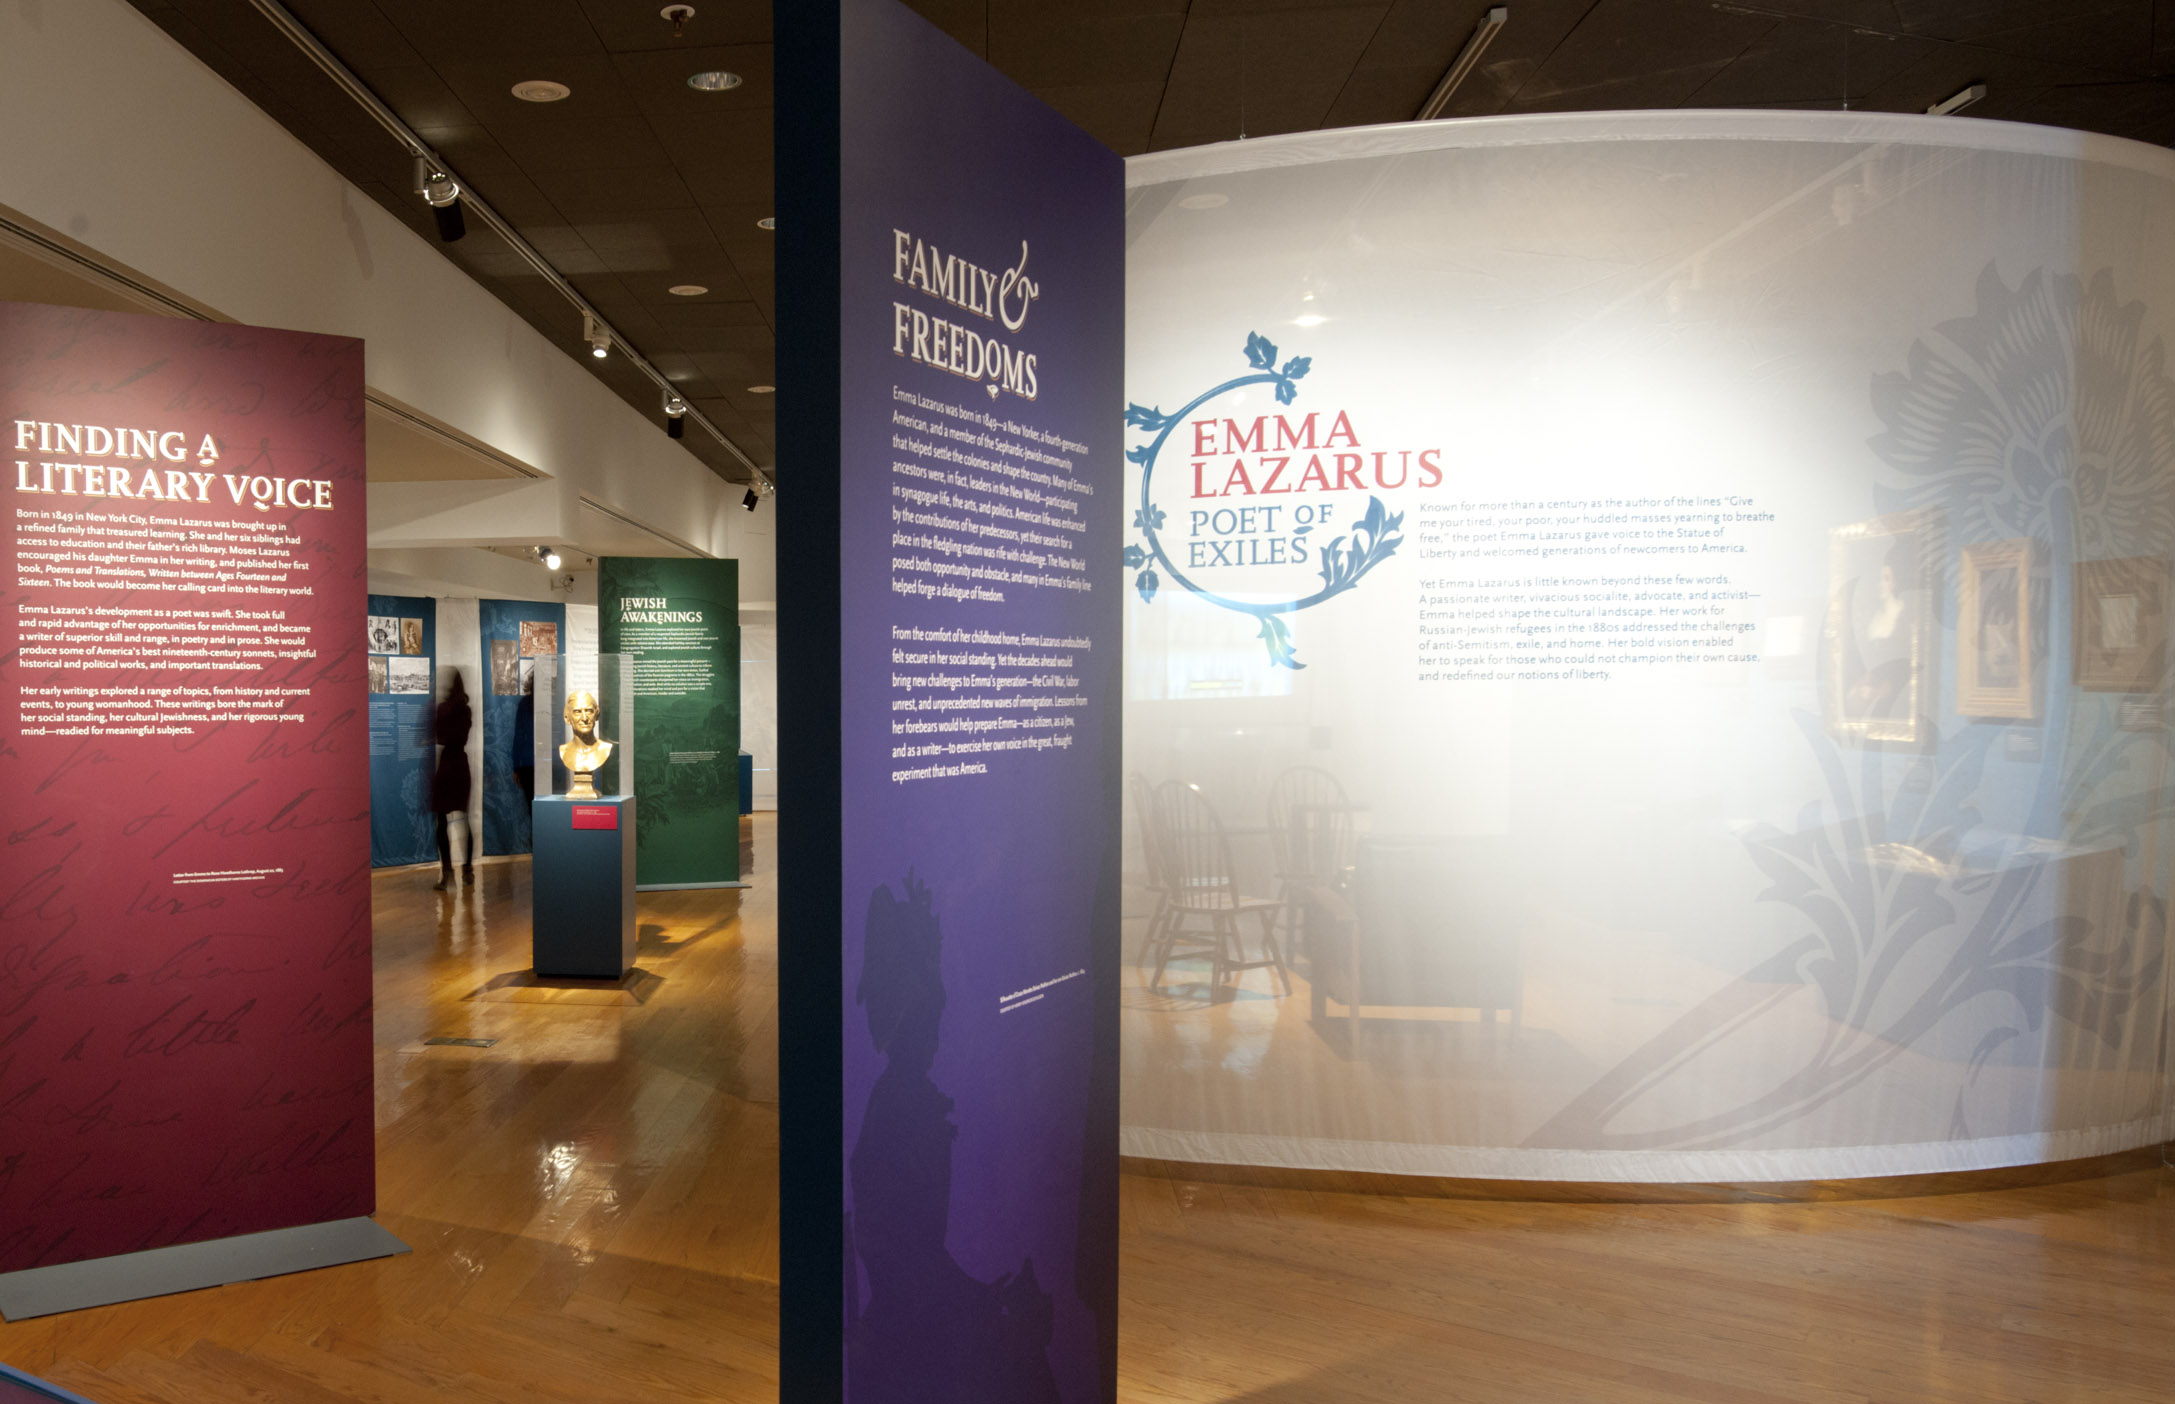 Project image 2 for Emma Lazarus: Poet of Exiles, Museum of Jewish Heritage